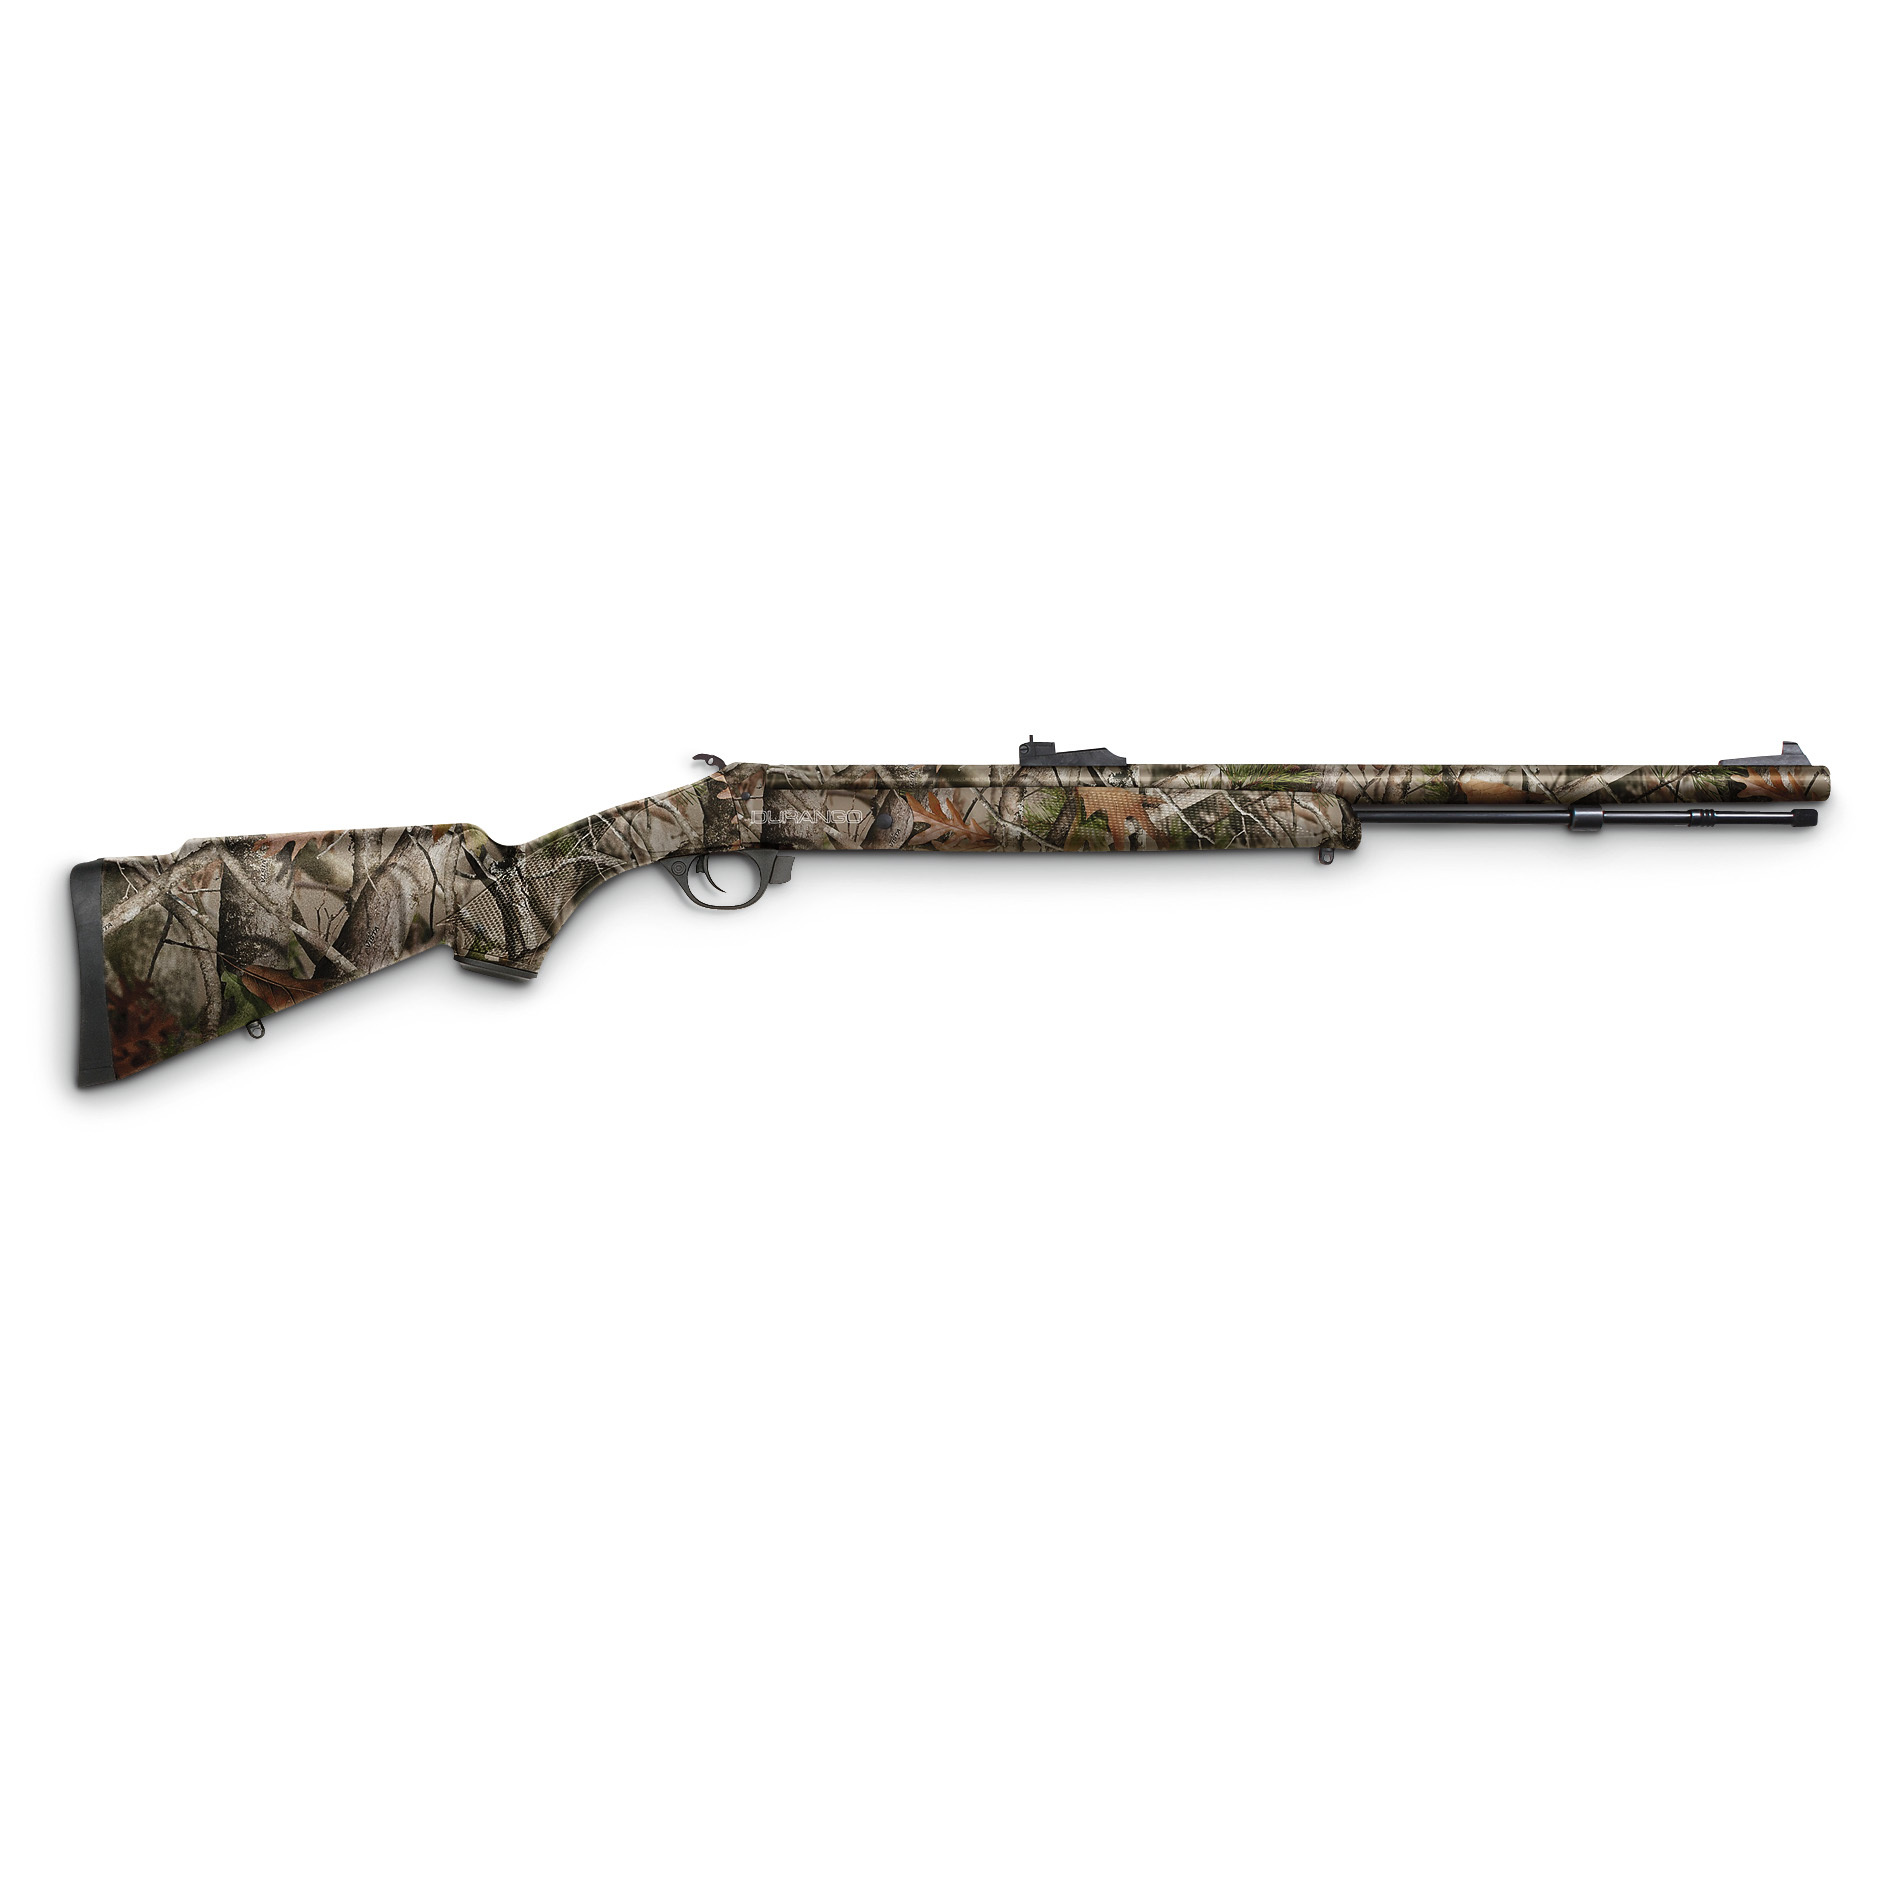 "Traditions Durango Muzzleloader Rifle, .50 Caliber 24"" Barrel, Full Camo is compact and easy to shoot! Black powder shooters, rejoice! This compact, lightweight Rifle checks in at only 6 lbs, 4 ozs. and is one smooth shooter. The Speed Load System allows for a bullet that is perfectly centered with the barrel rifling for more consistent groups. And you'll get fast-release break-open action with the push of a button. Best of all, the Dual Safety System allows you to break open the rifle and remove your live primer without having to depress your hammer. Featuring a 24""l. barrel, use the Durango for shots in dense brush or long shots across fields. 209 shotgun primer ignition Includes sling swivel studs, solid aluminum ramrod and adjustable sights 1 in 28"" twist Accepts magnum charge of up to 150 grains powder Overall length is 40"". Crack one open today... order yours now!!!! Limited Quantities !!! - $329.99"